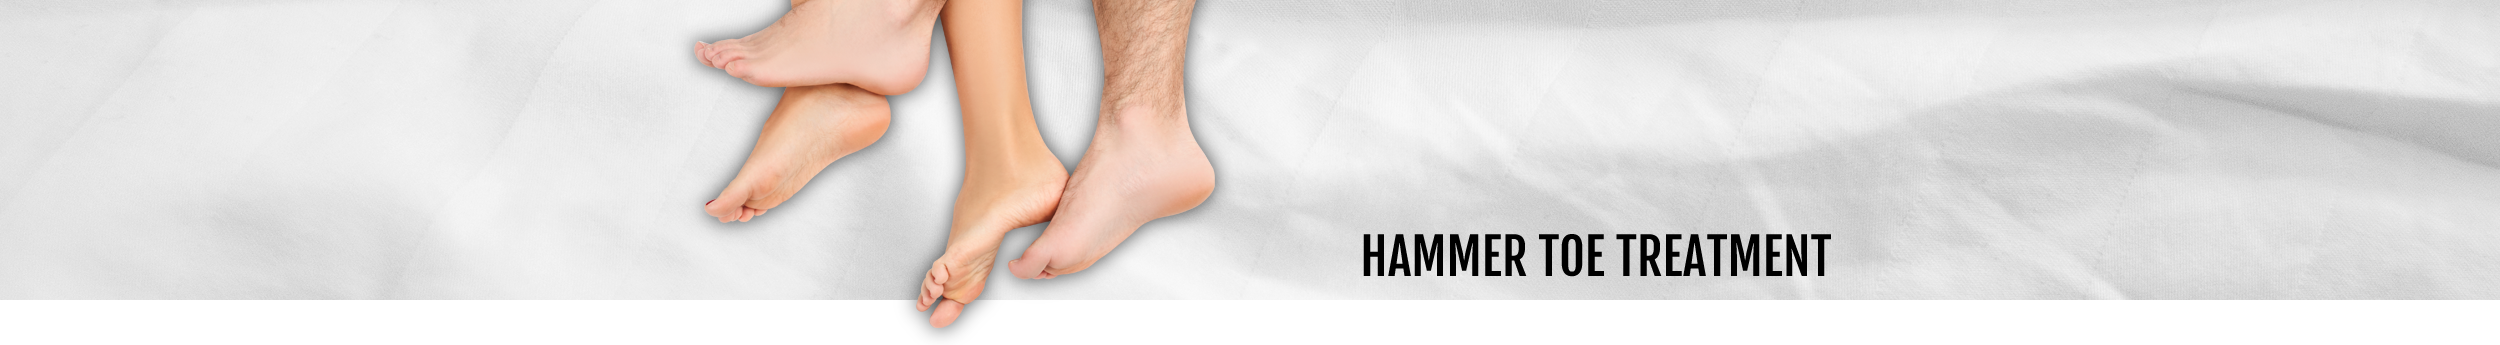 Hammer Toe treatment header for the Walk IN Foot Clinic in central London